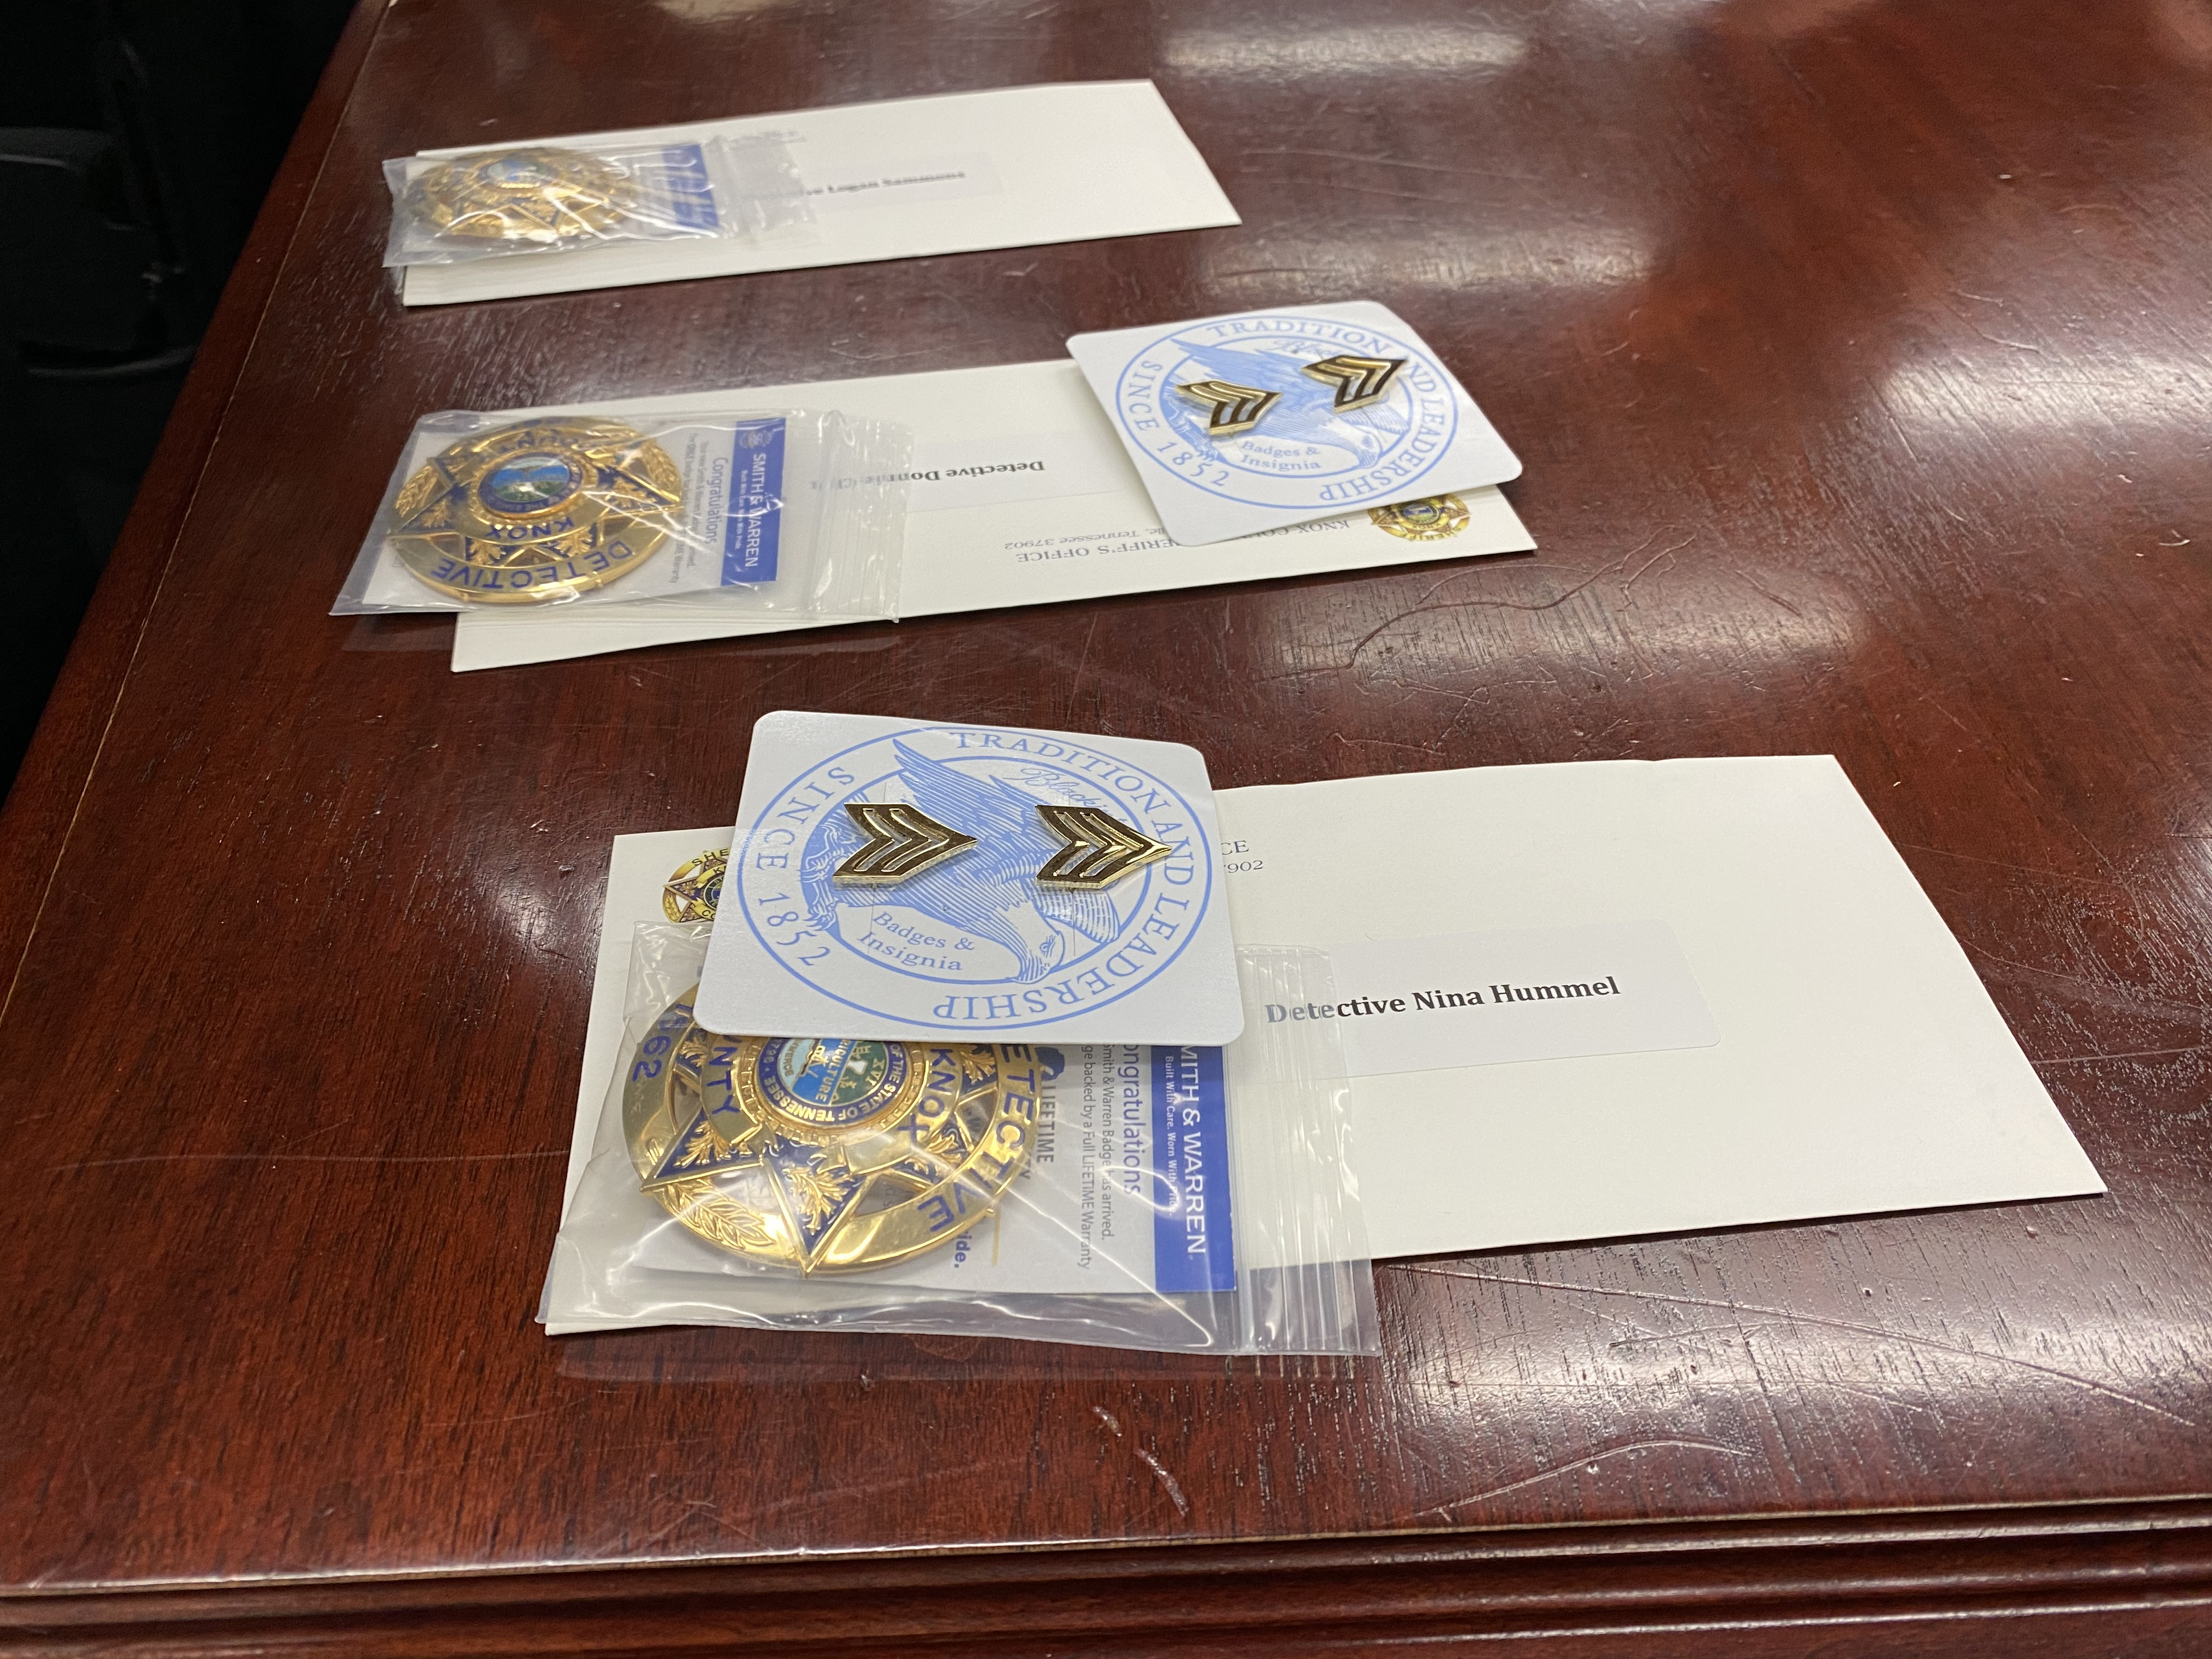 Badges, collar brass, and envelopes lying on wooden table